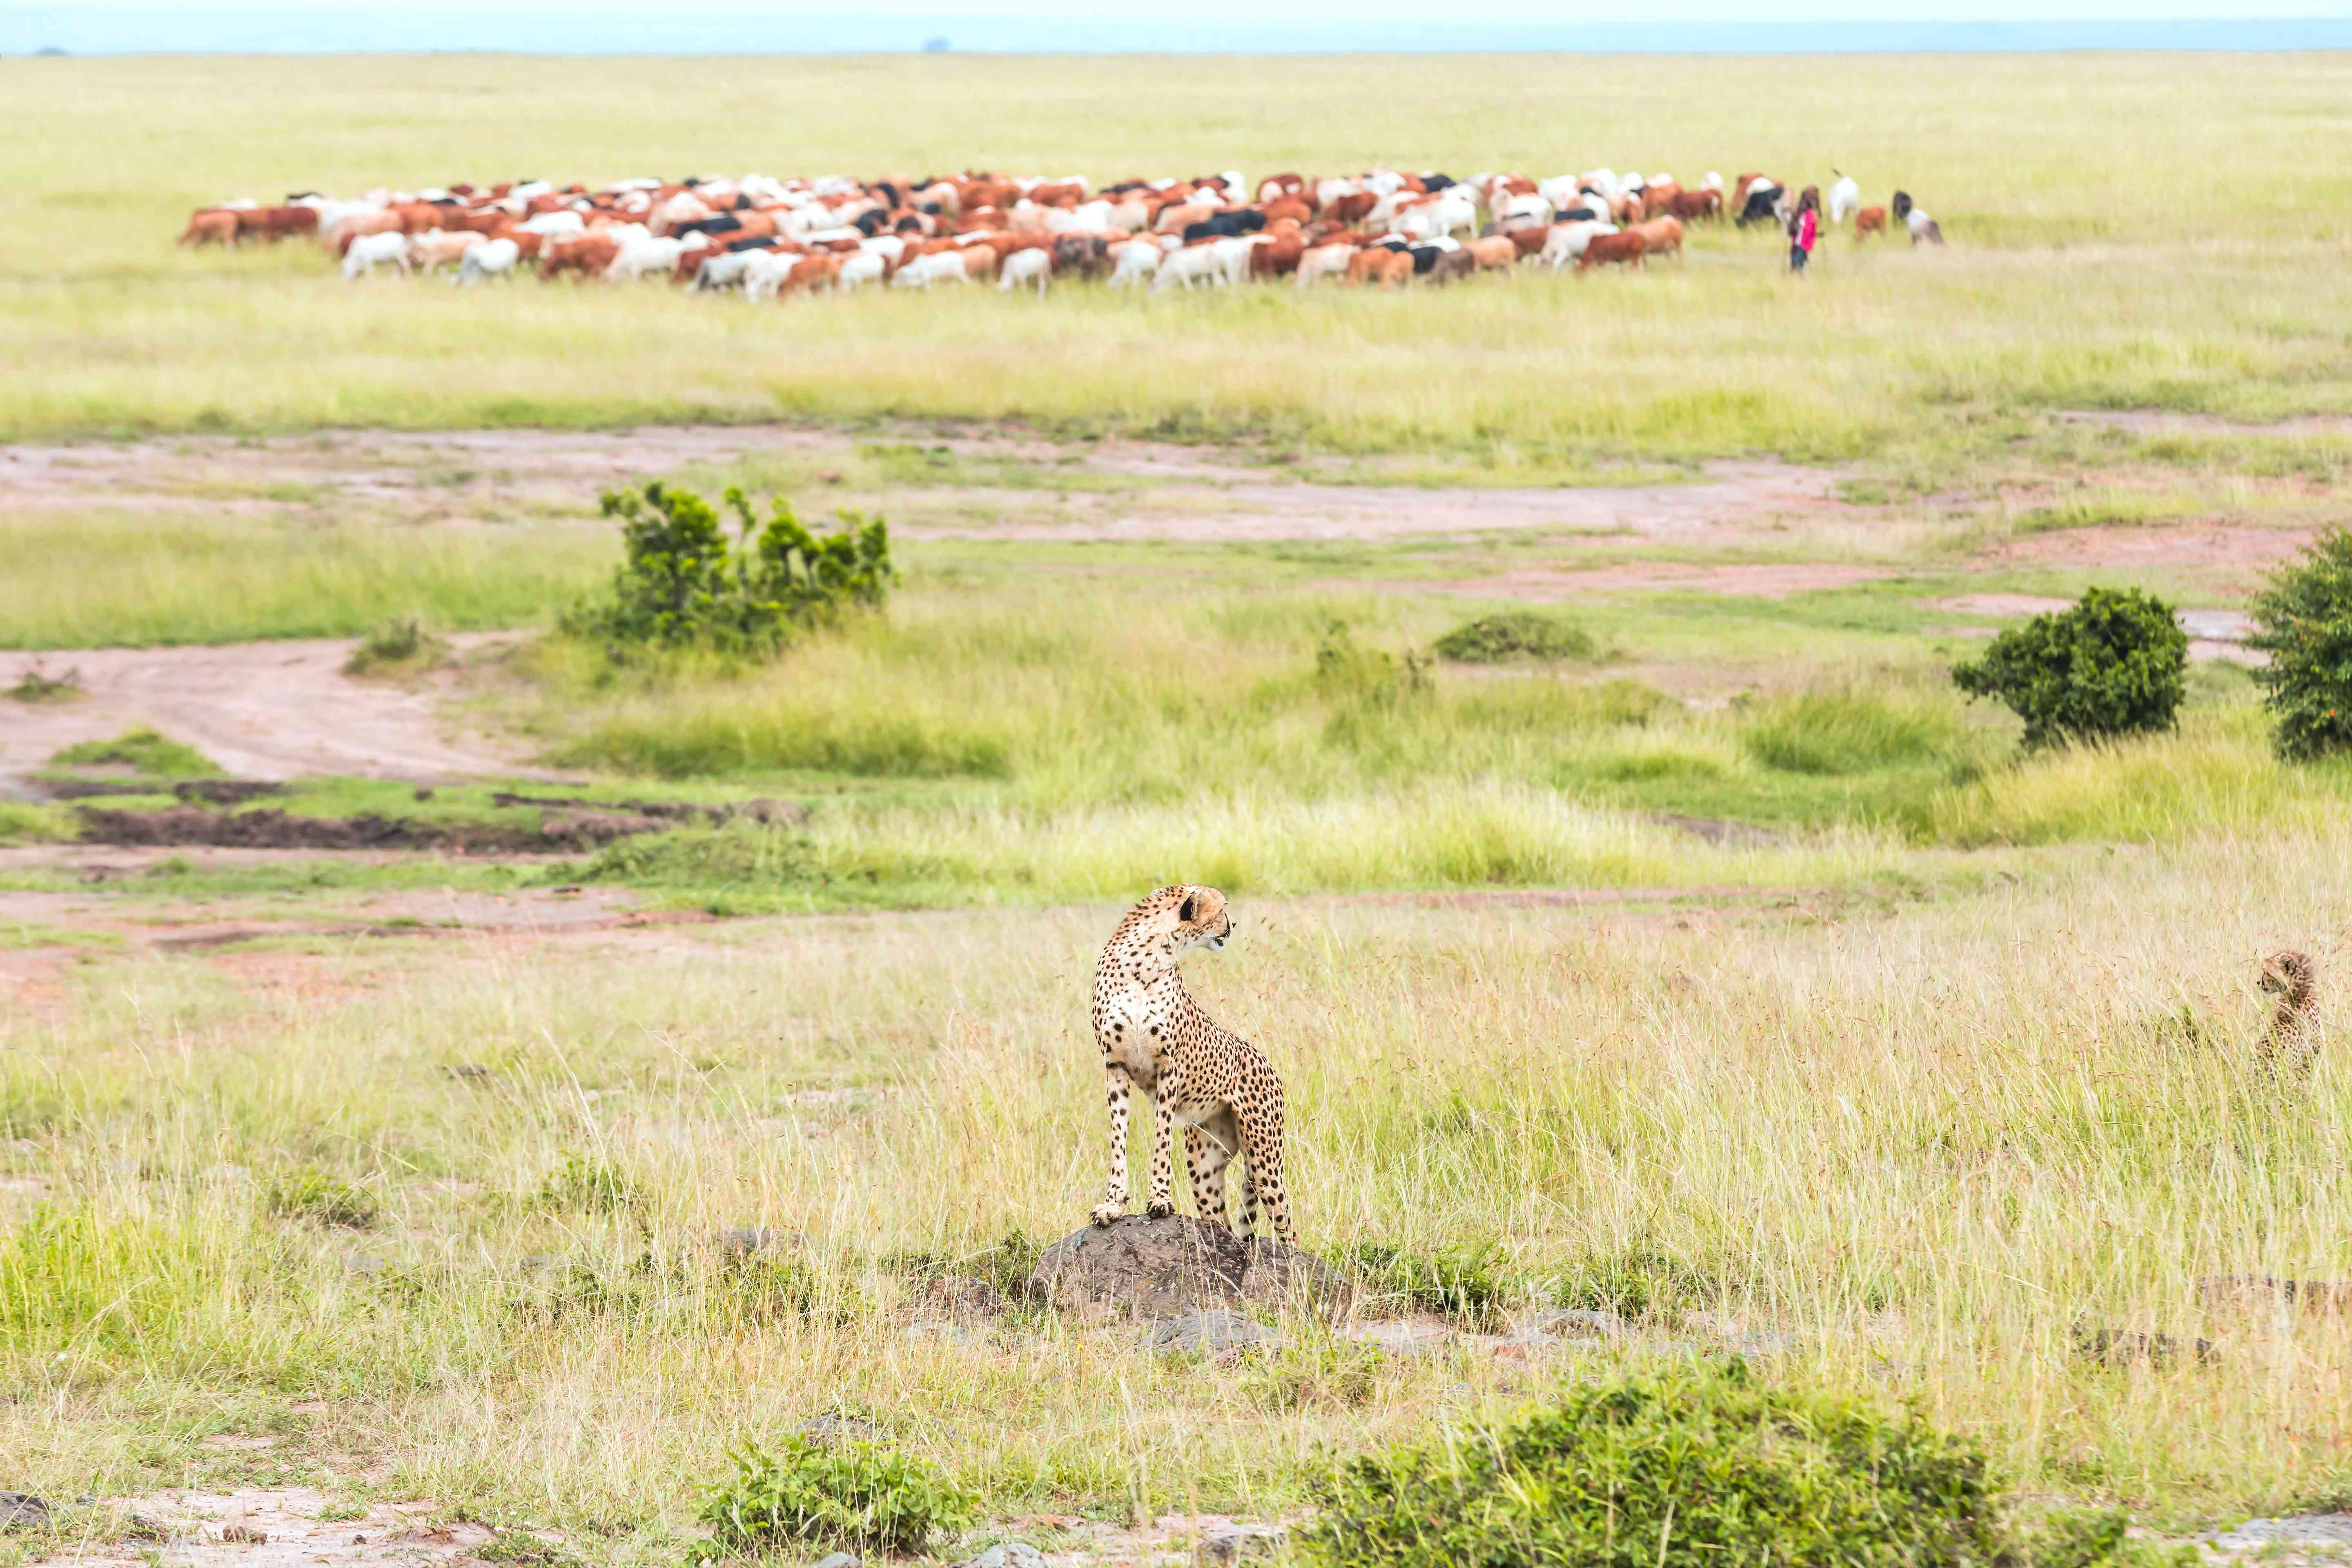 Cheetah and cub - Watching with Masai cattle herd